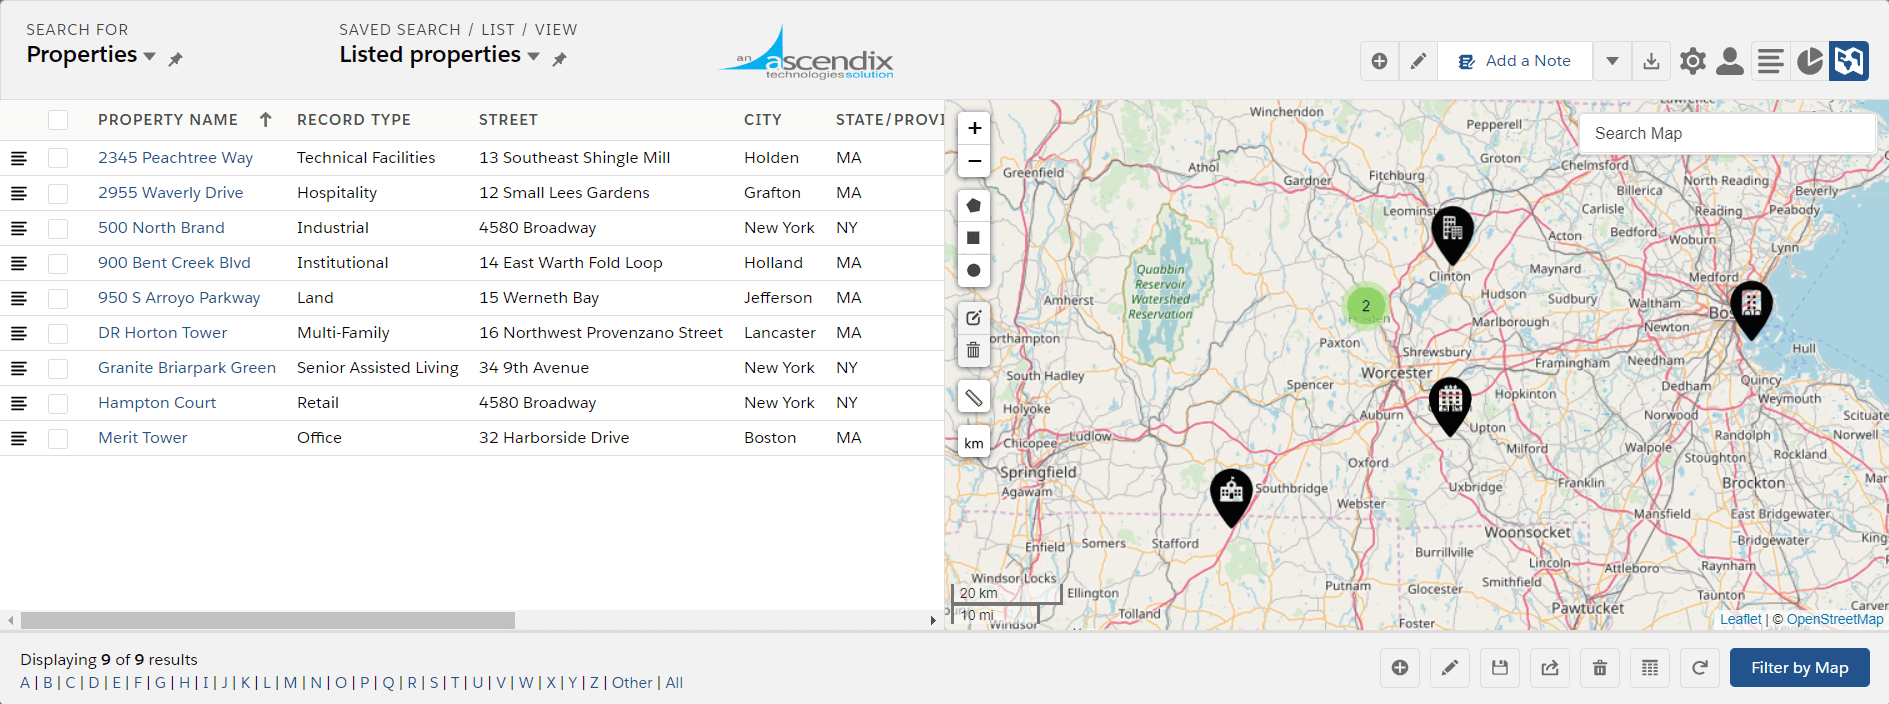 Ascendix-Search-app-for-Salesforce-custom-pins-on-a-map